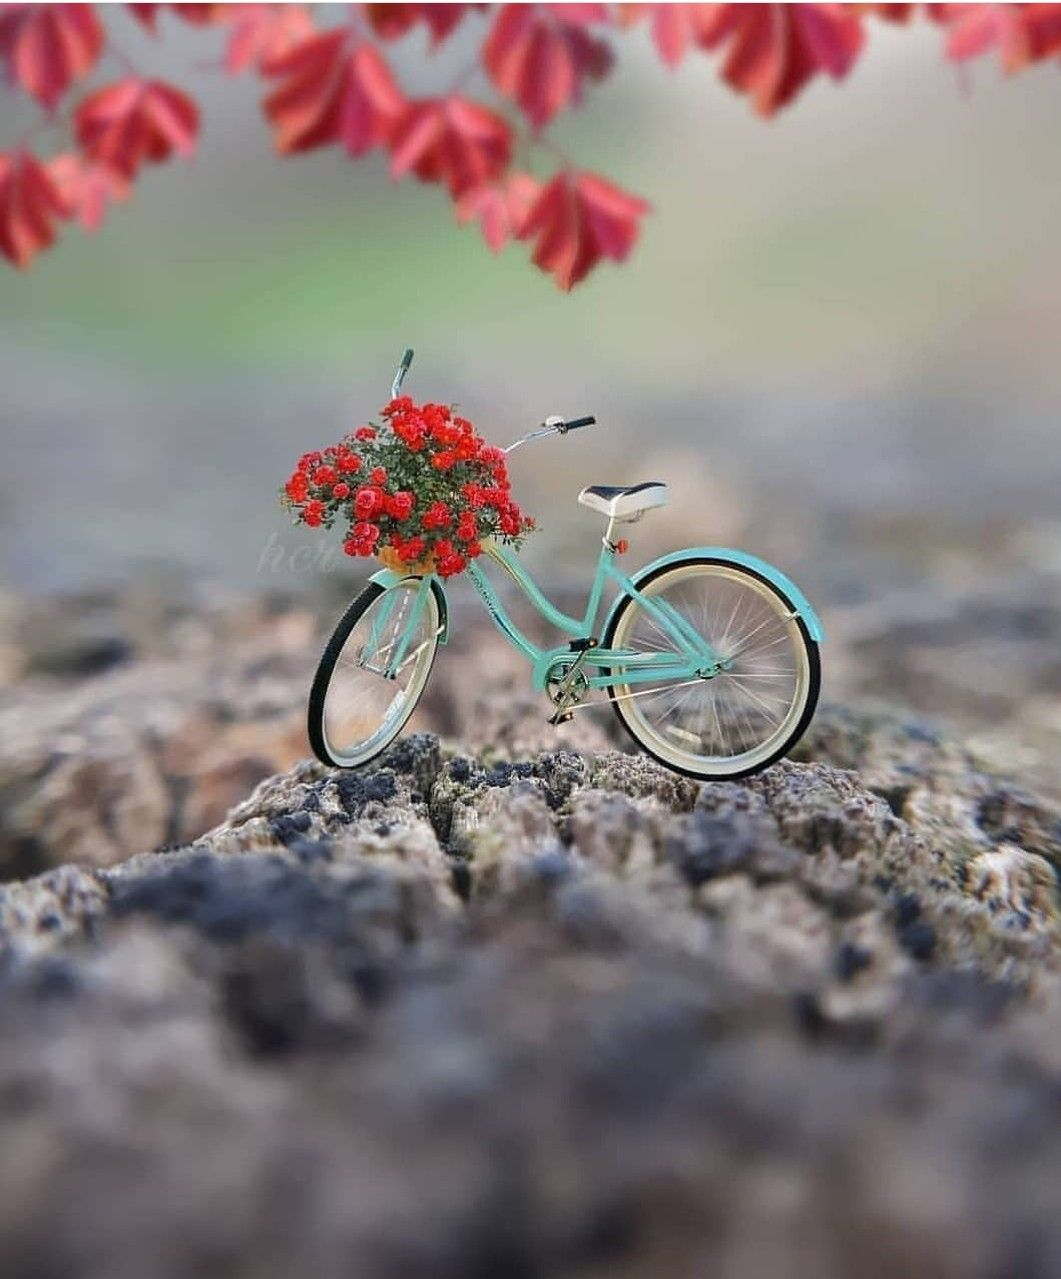 Pin By Kairafashion On Gifts Miniature Photography Cute Photography Dp Photos